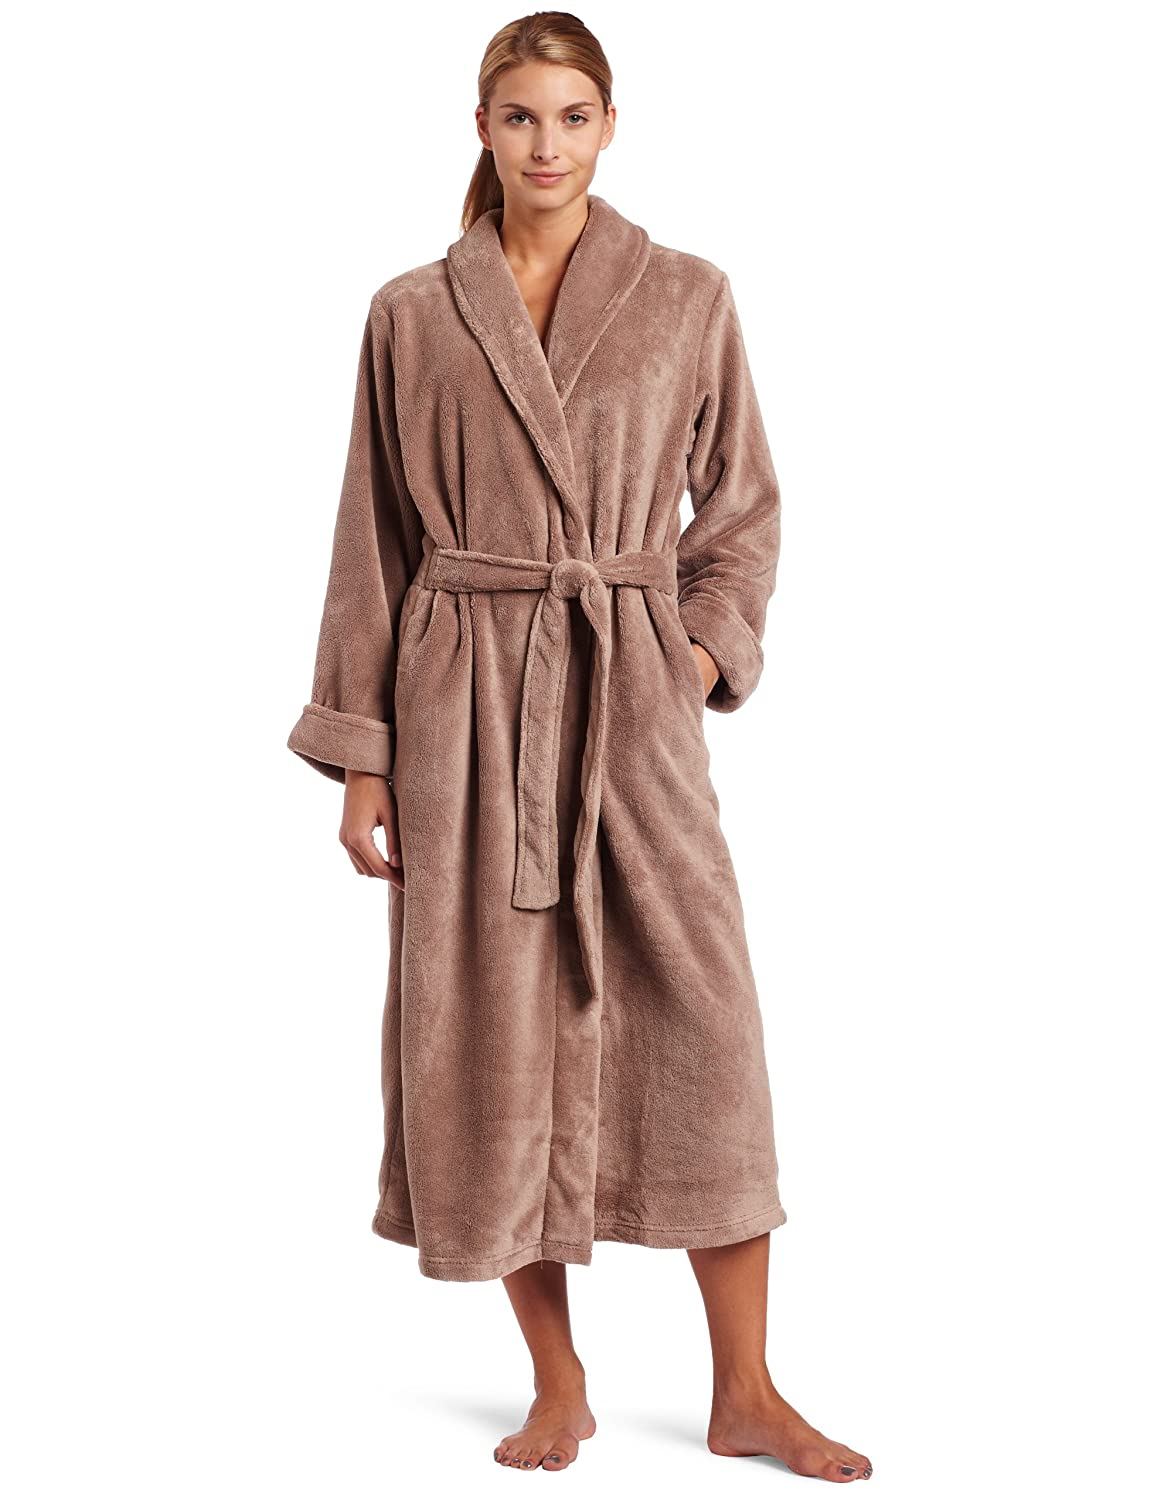 COFFEE Casual Moments Women's Wrap Robe